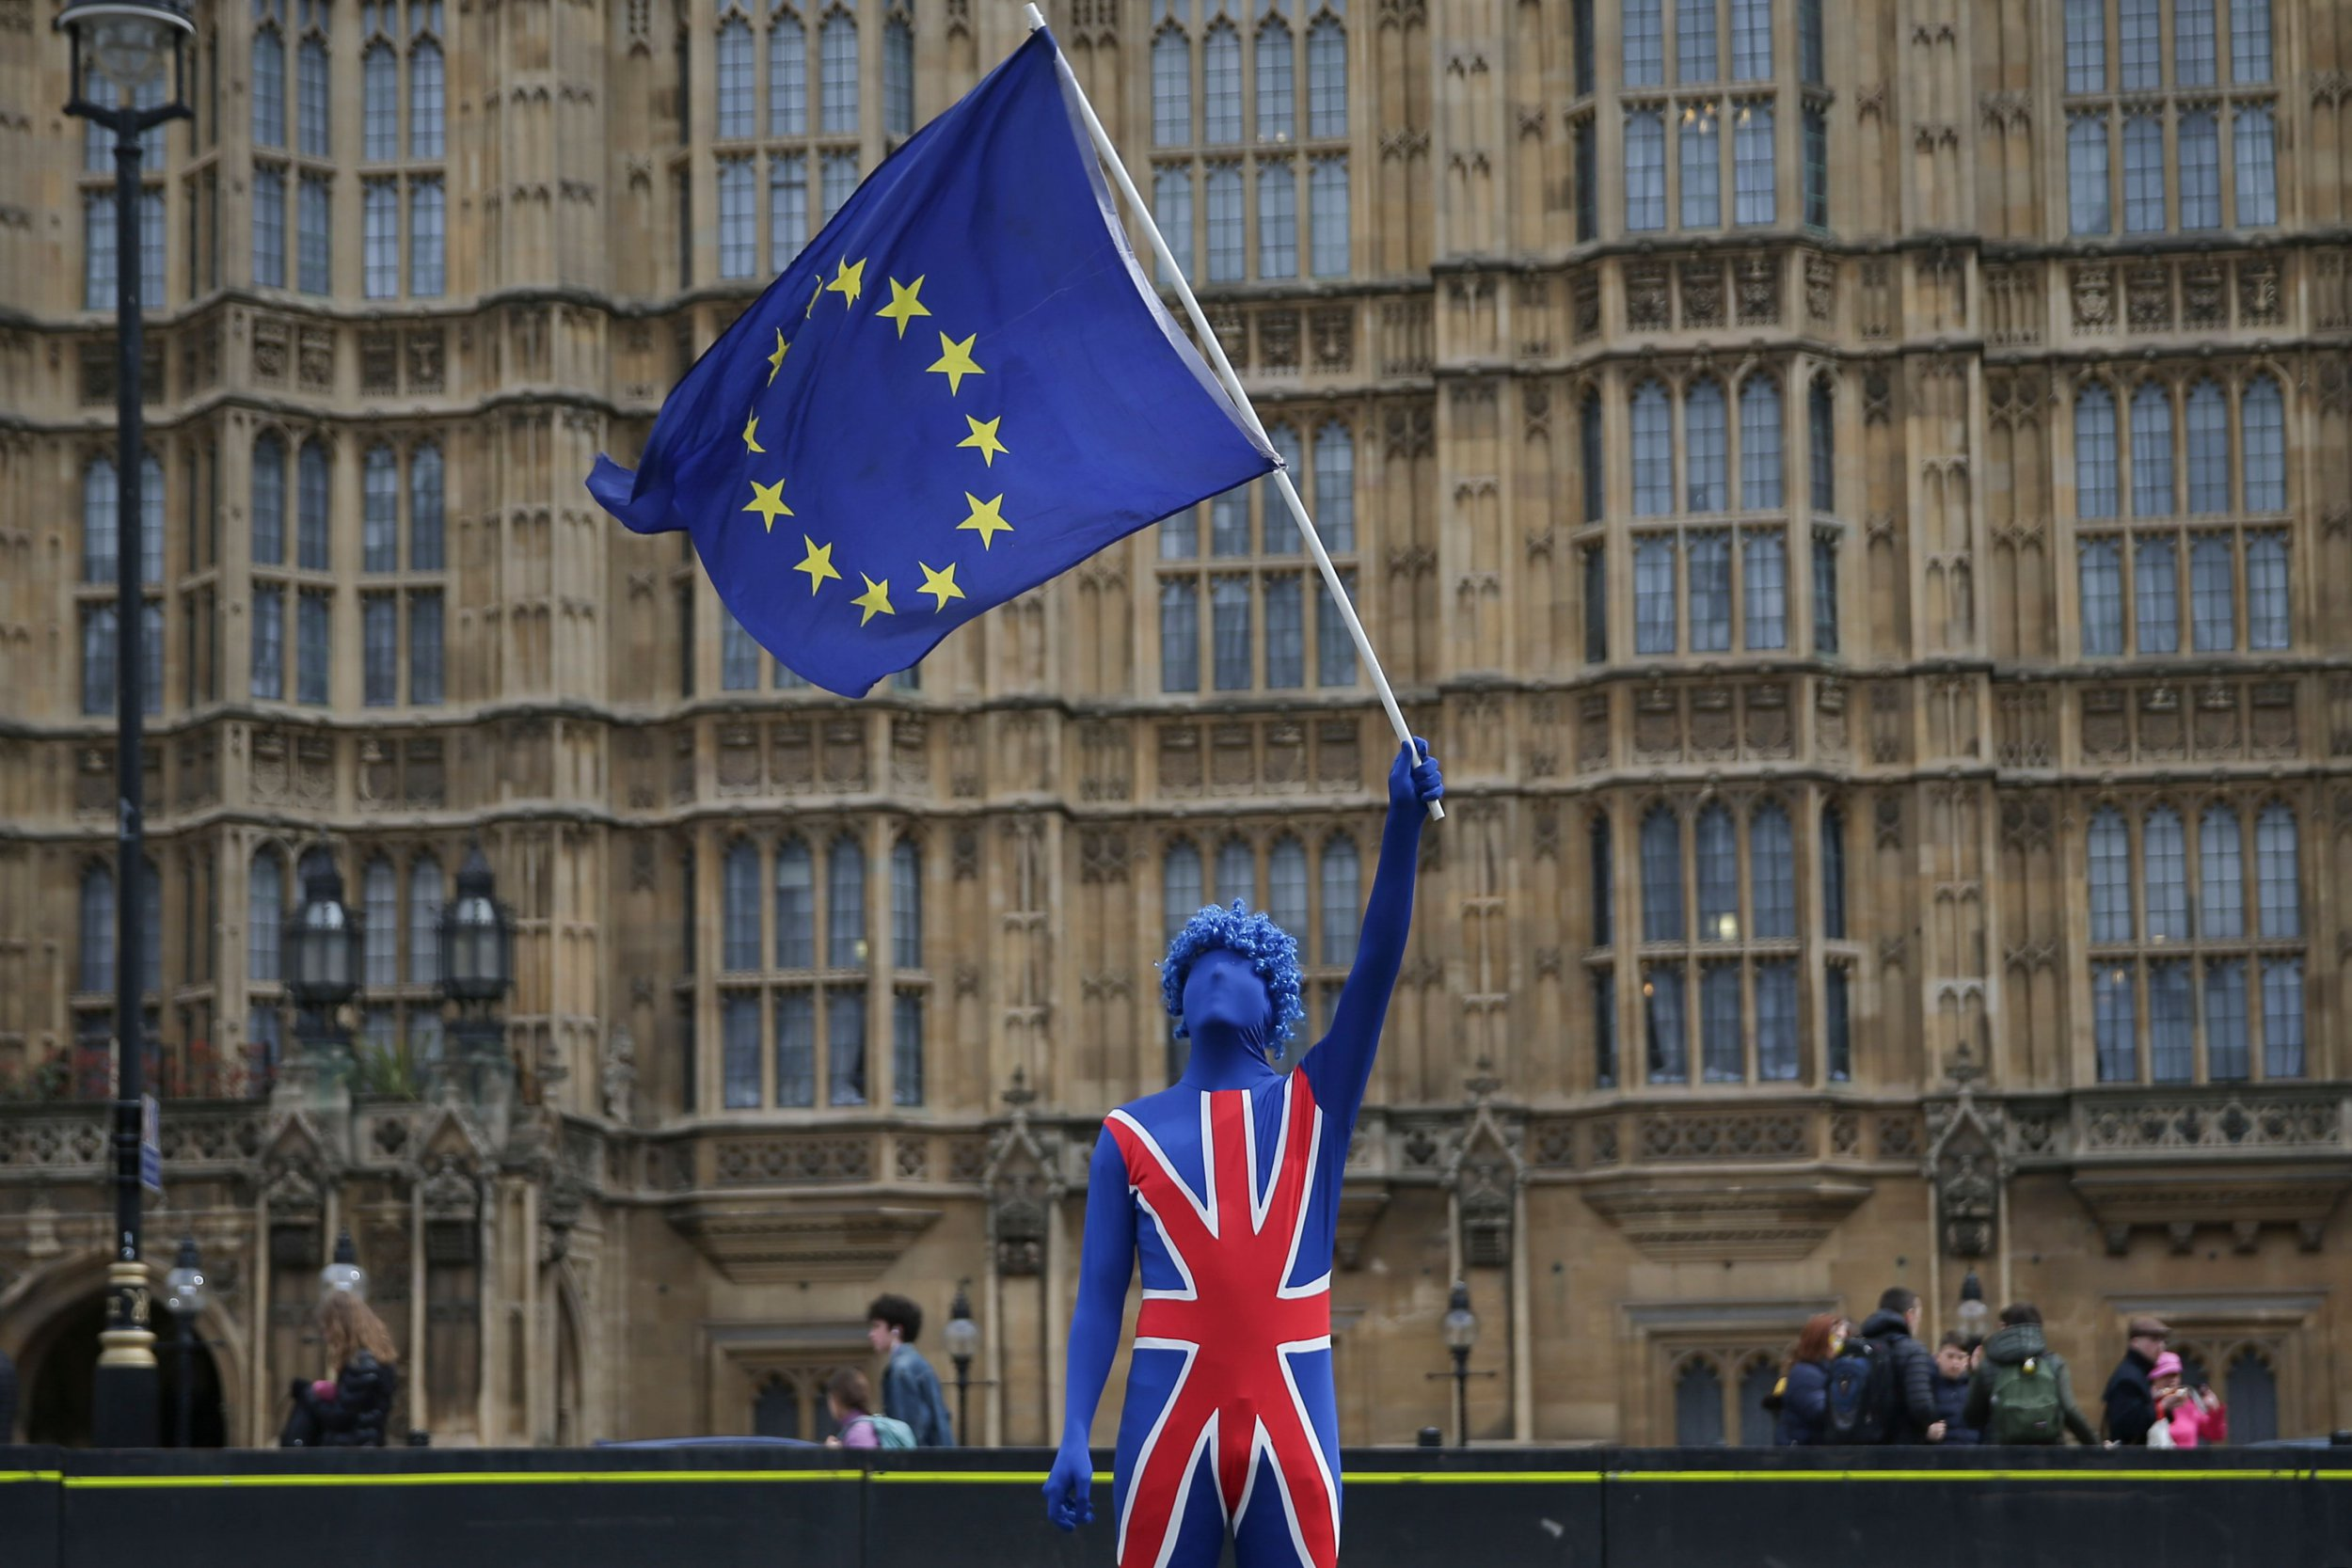 A anti-Brexit demonstrator dressed in a Union Flag suit and waving an EU flag stands on the road outside the Houses of Parliament in central London on March 29, 2018. The one-year countdown to Britain's exit from the European Union began on March 29, 2018 with Prime Minister Theresa May touring the UK shore up support for the government's Brexit strategy. / AFP PHOTO / Daniel LEAL-OLIVASDANIEL LEAL-OLIVAS/AFP/Getty Images